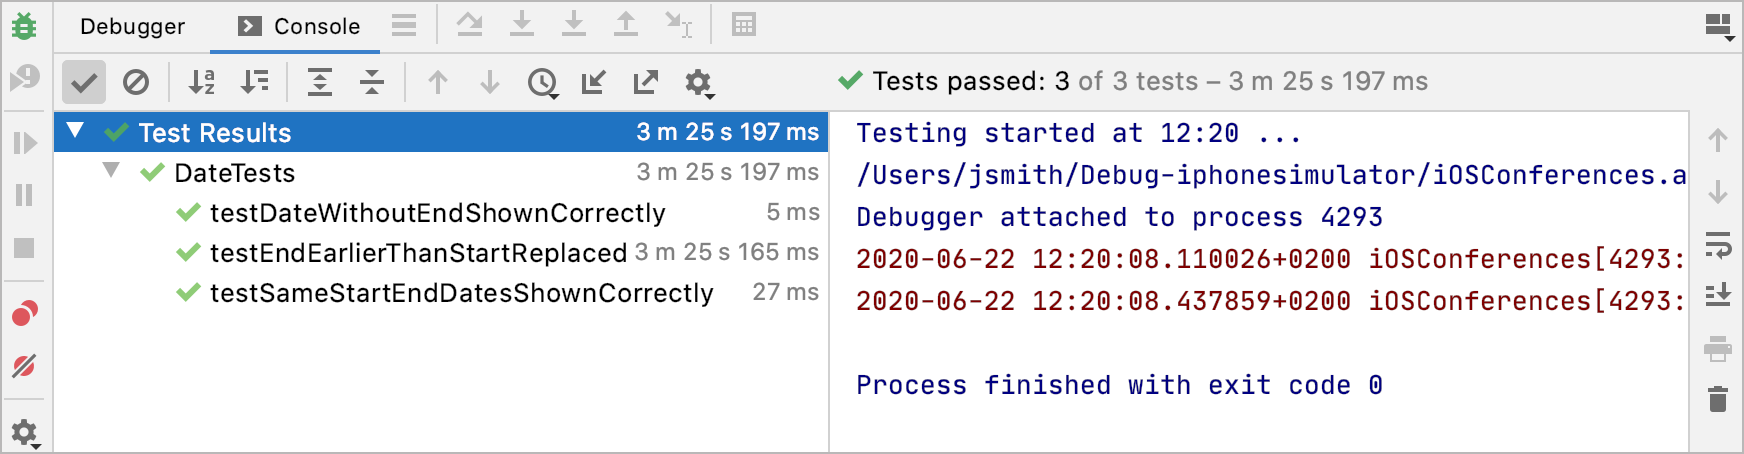 All tests fixed